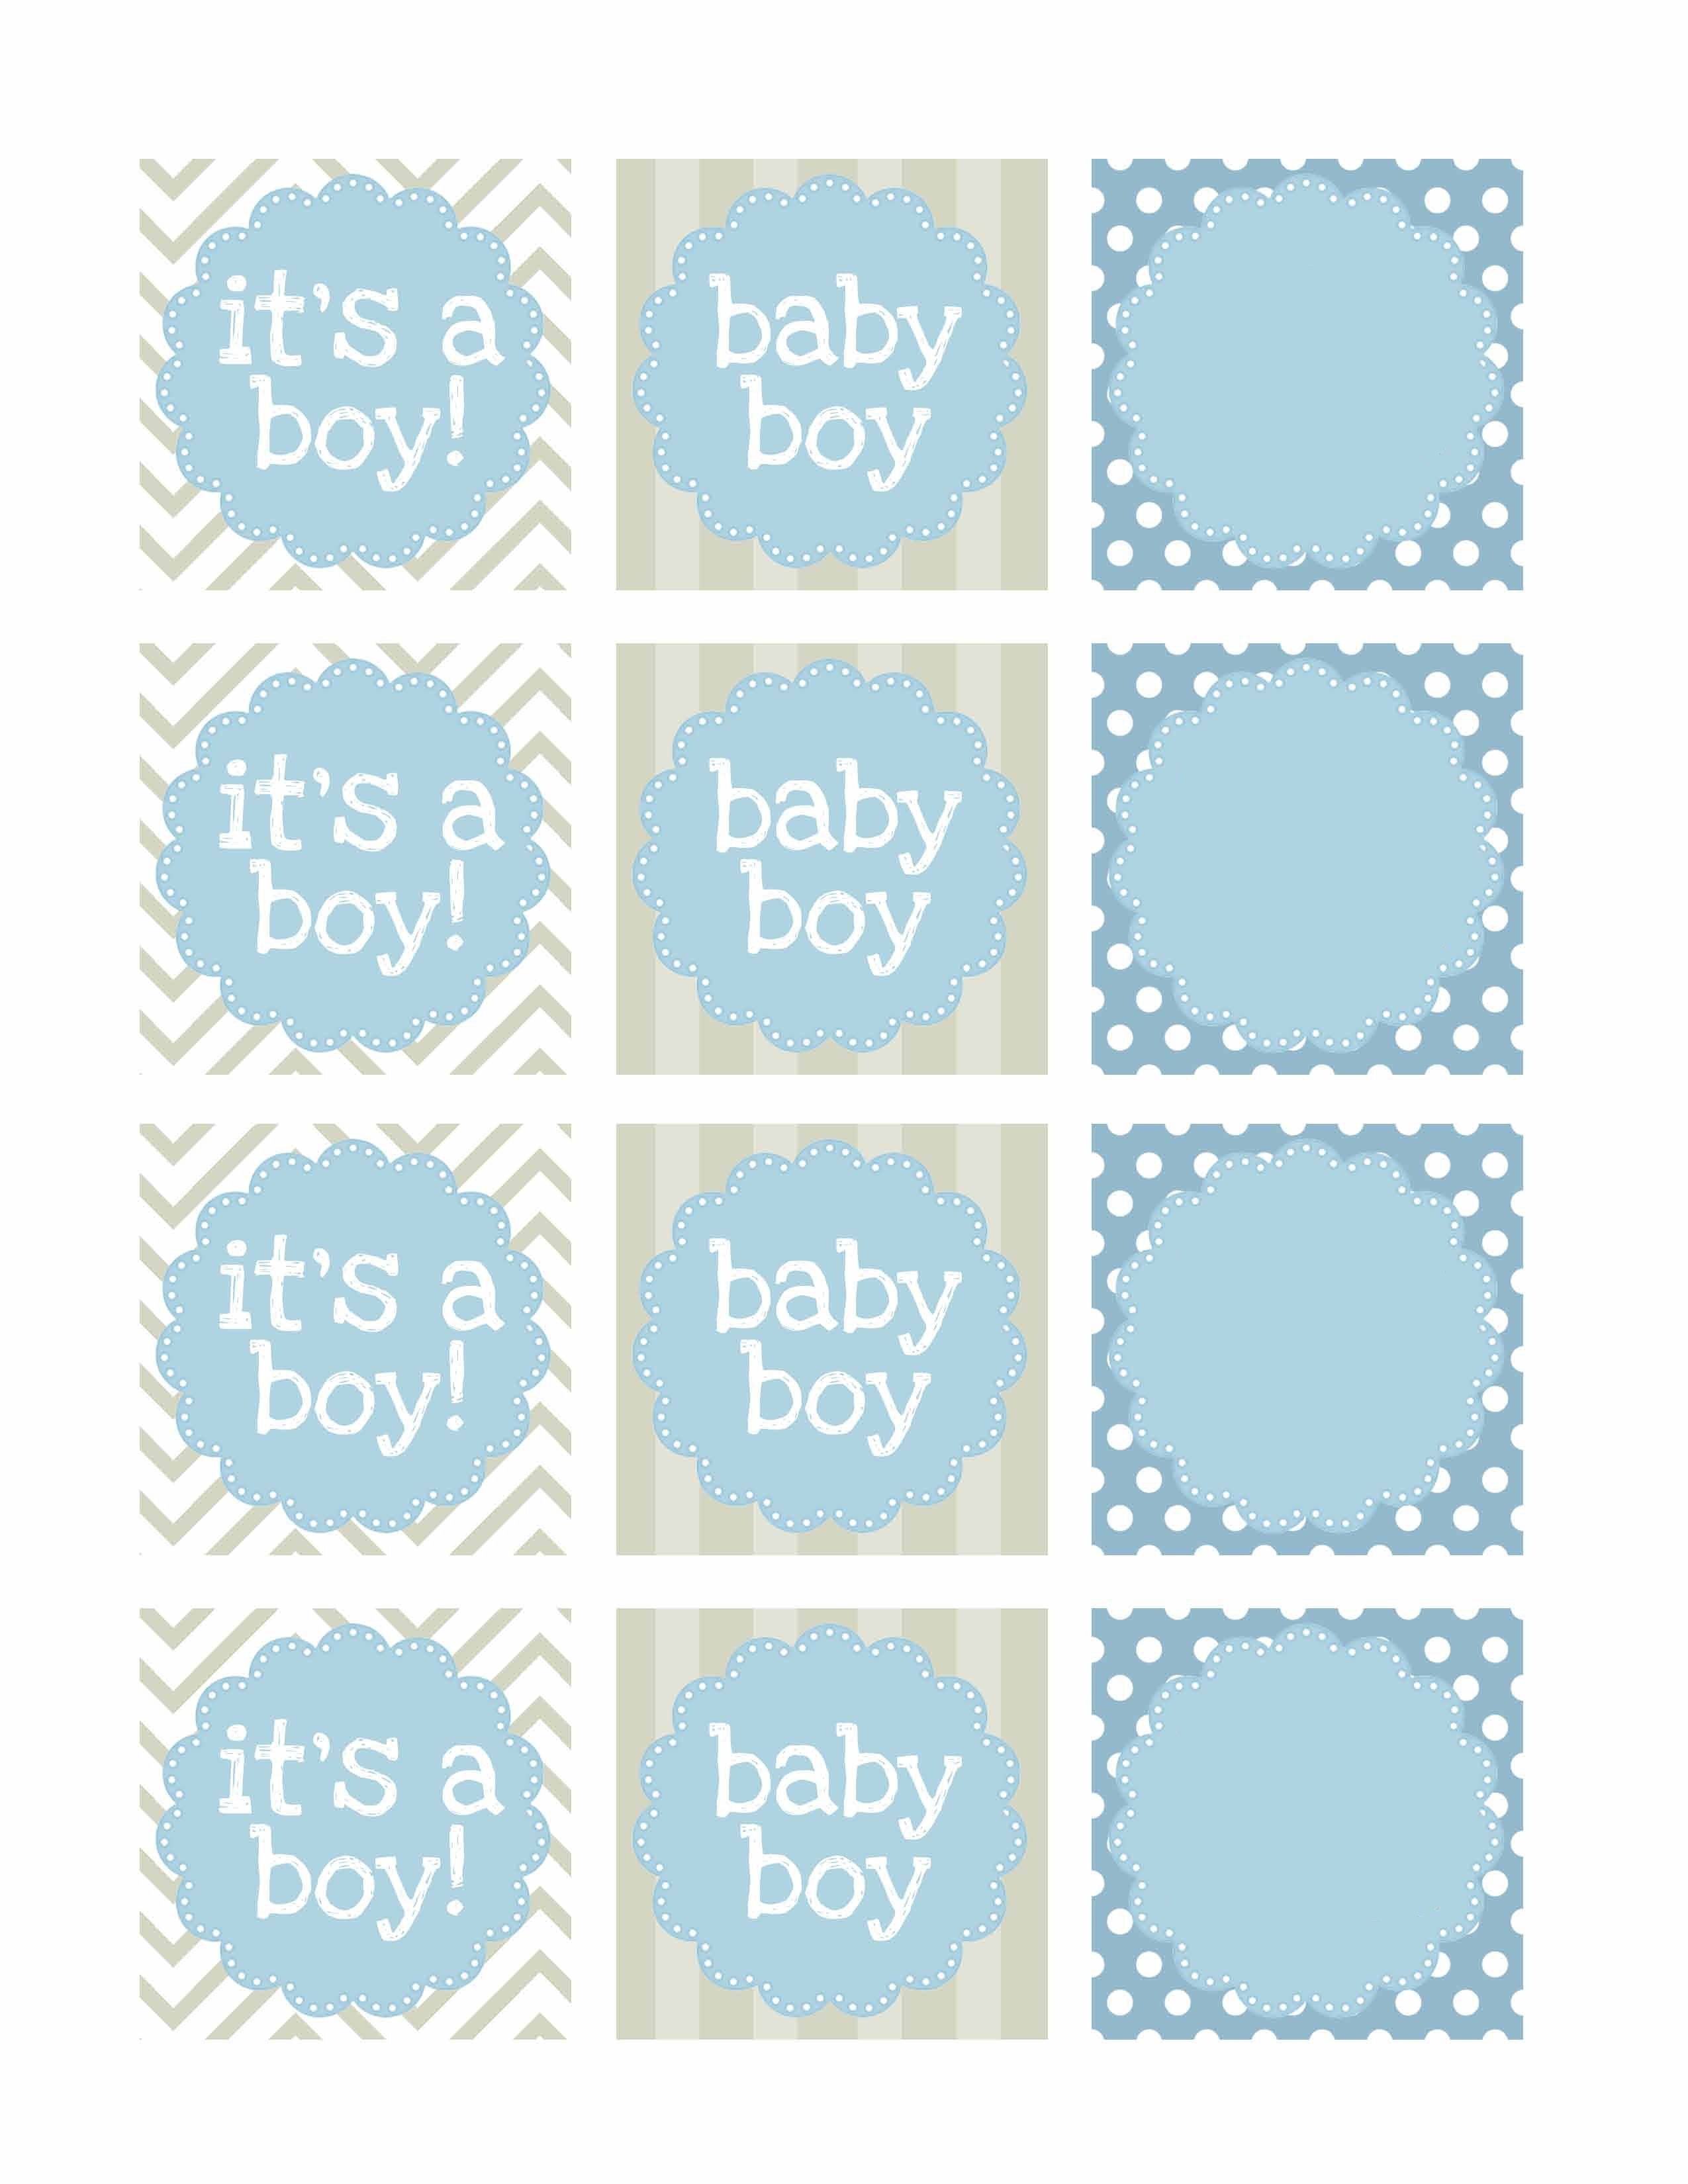 Boy Baby Shower Free Printables   Baby Shower   Baby Shower Labels - Free Printable Baby Shower Labels And Tags